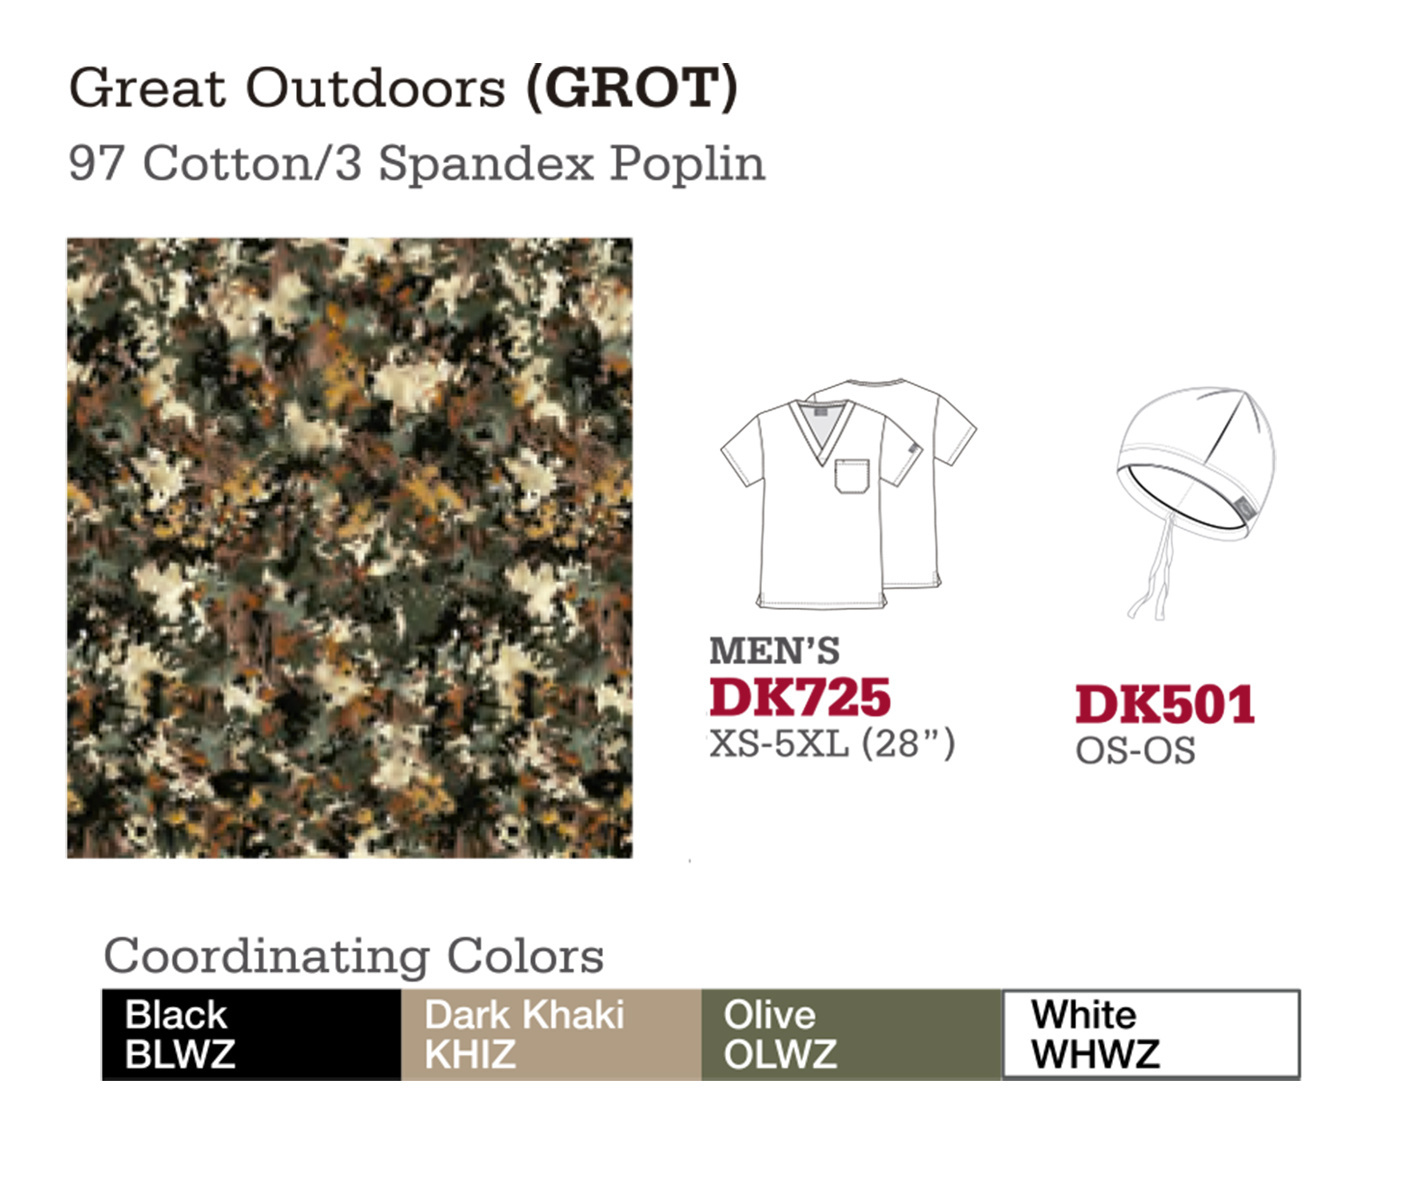 Great Outdoors. DK725. DK501.